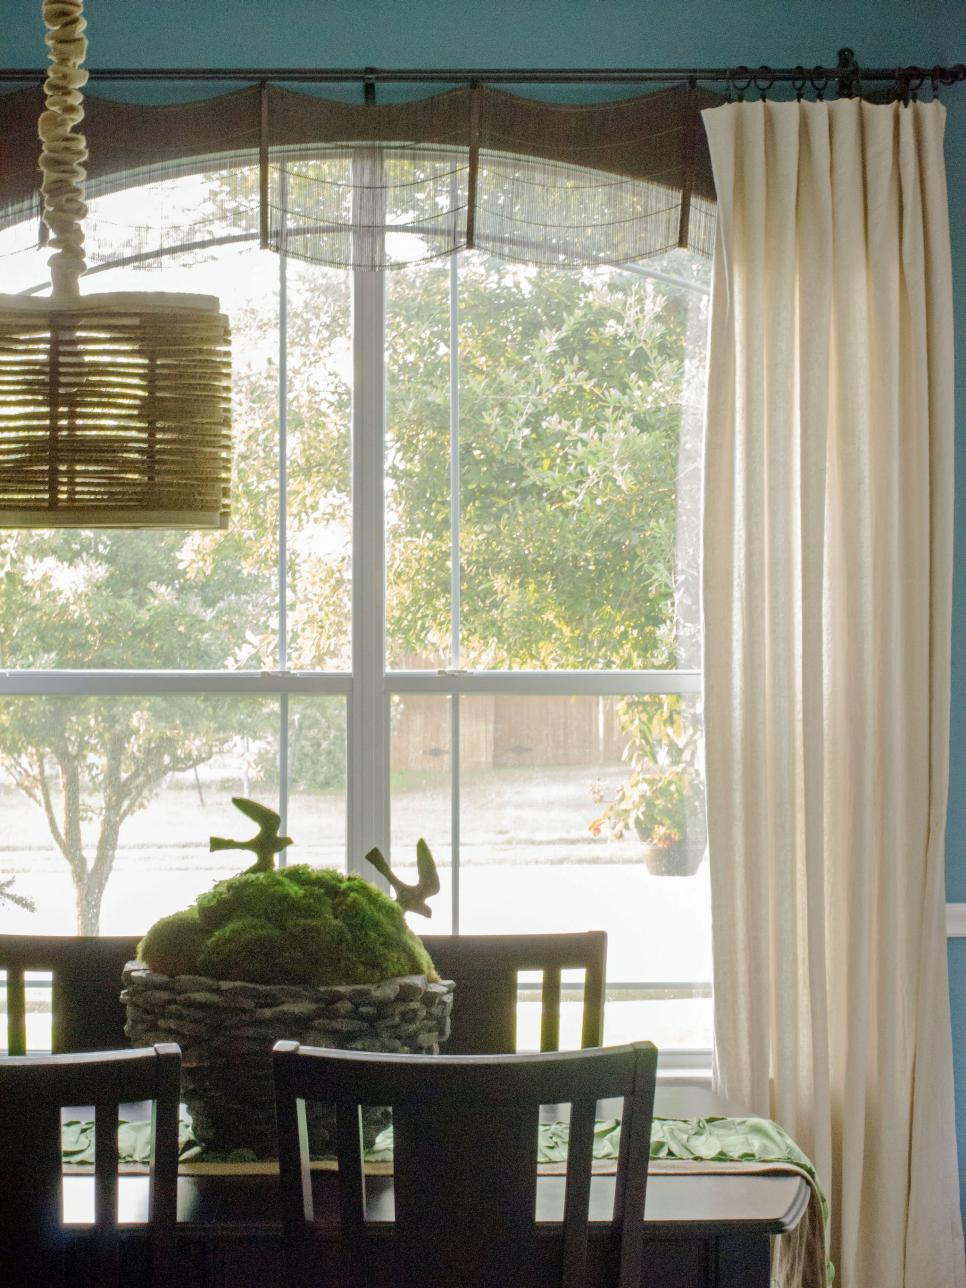 Dining room window treatments window treatments for bay for Dining room window treatments